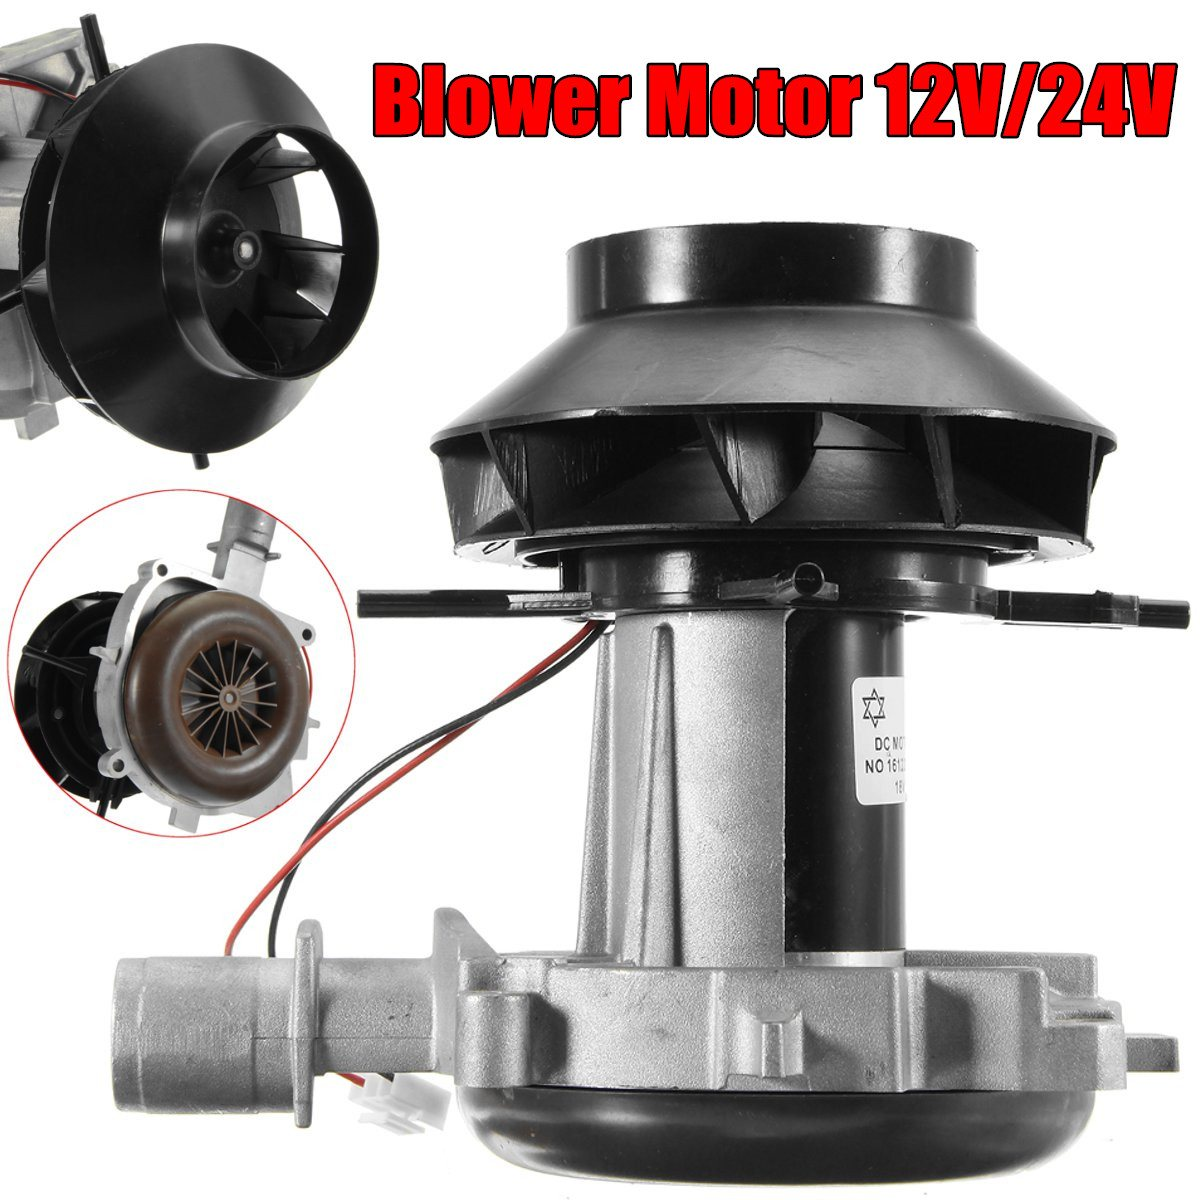 12V 24V Blower Motor Combustion Air Fan For Webasto Eberspacher Airtronic D4 Air Devr Parking Heater Replacement automotive air conditioning outlander blower motor blower motor motor warm wind